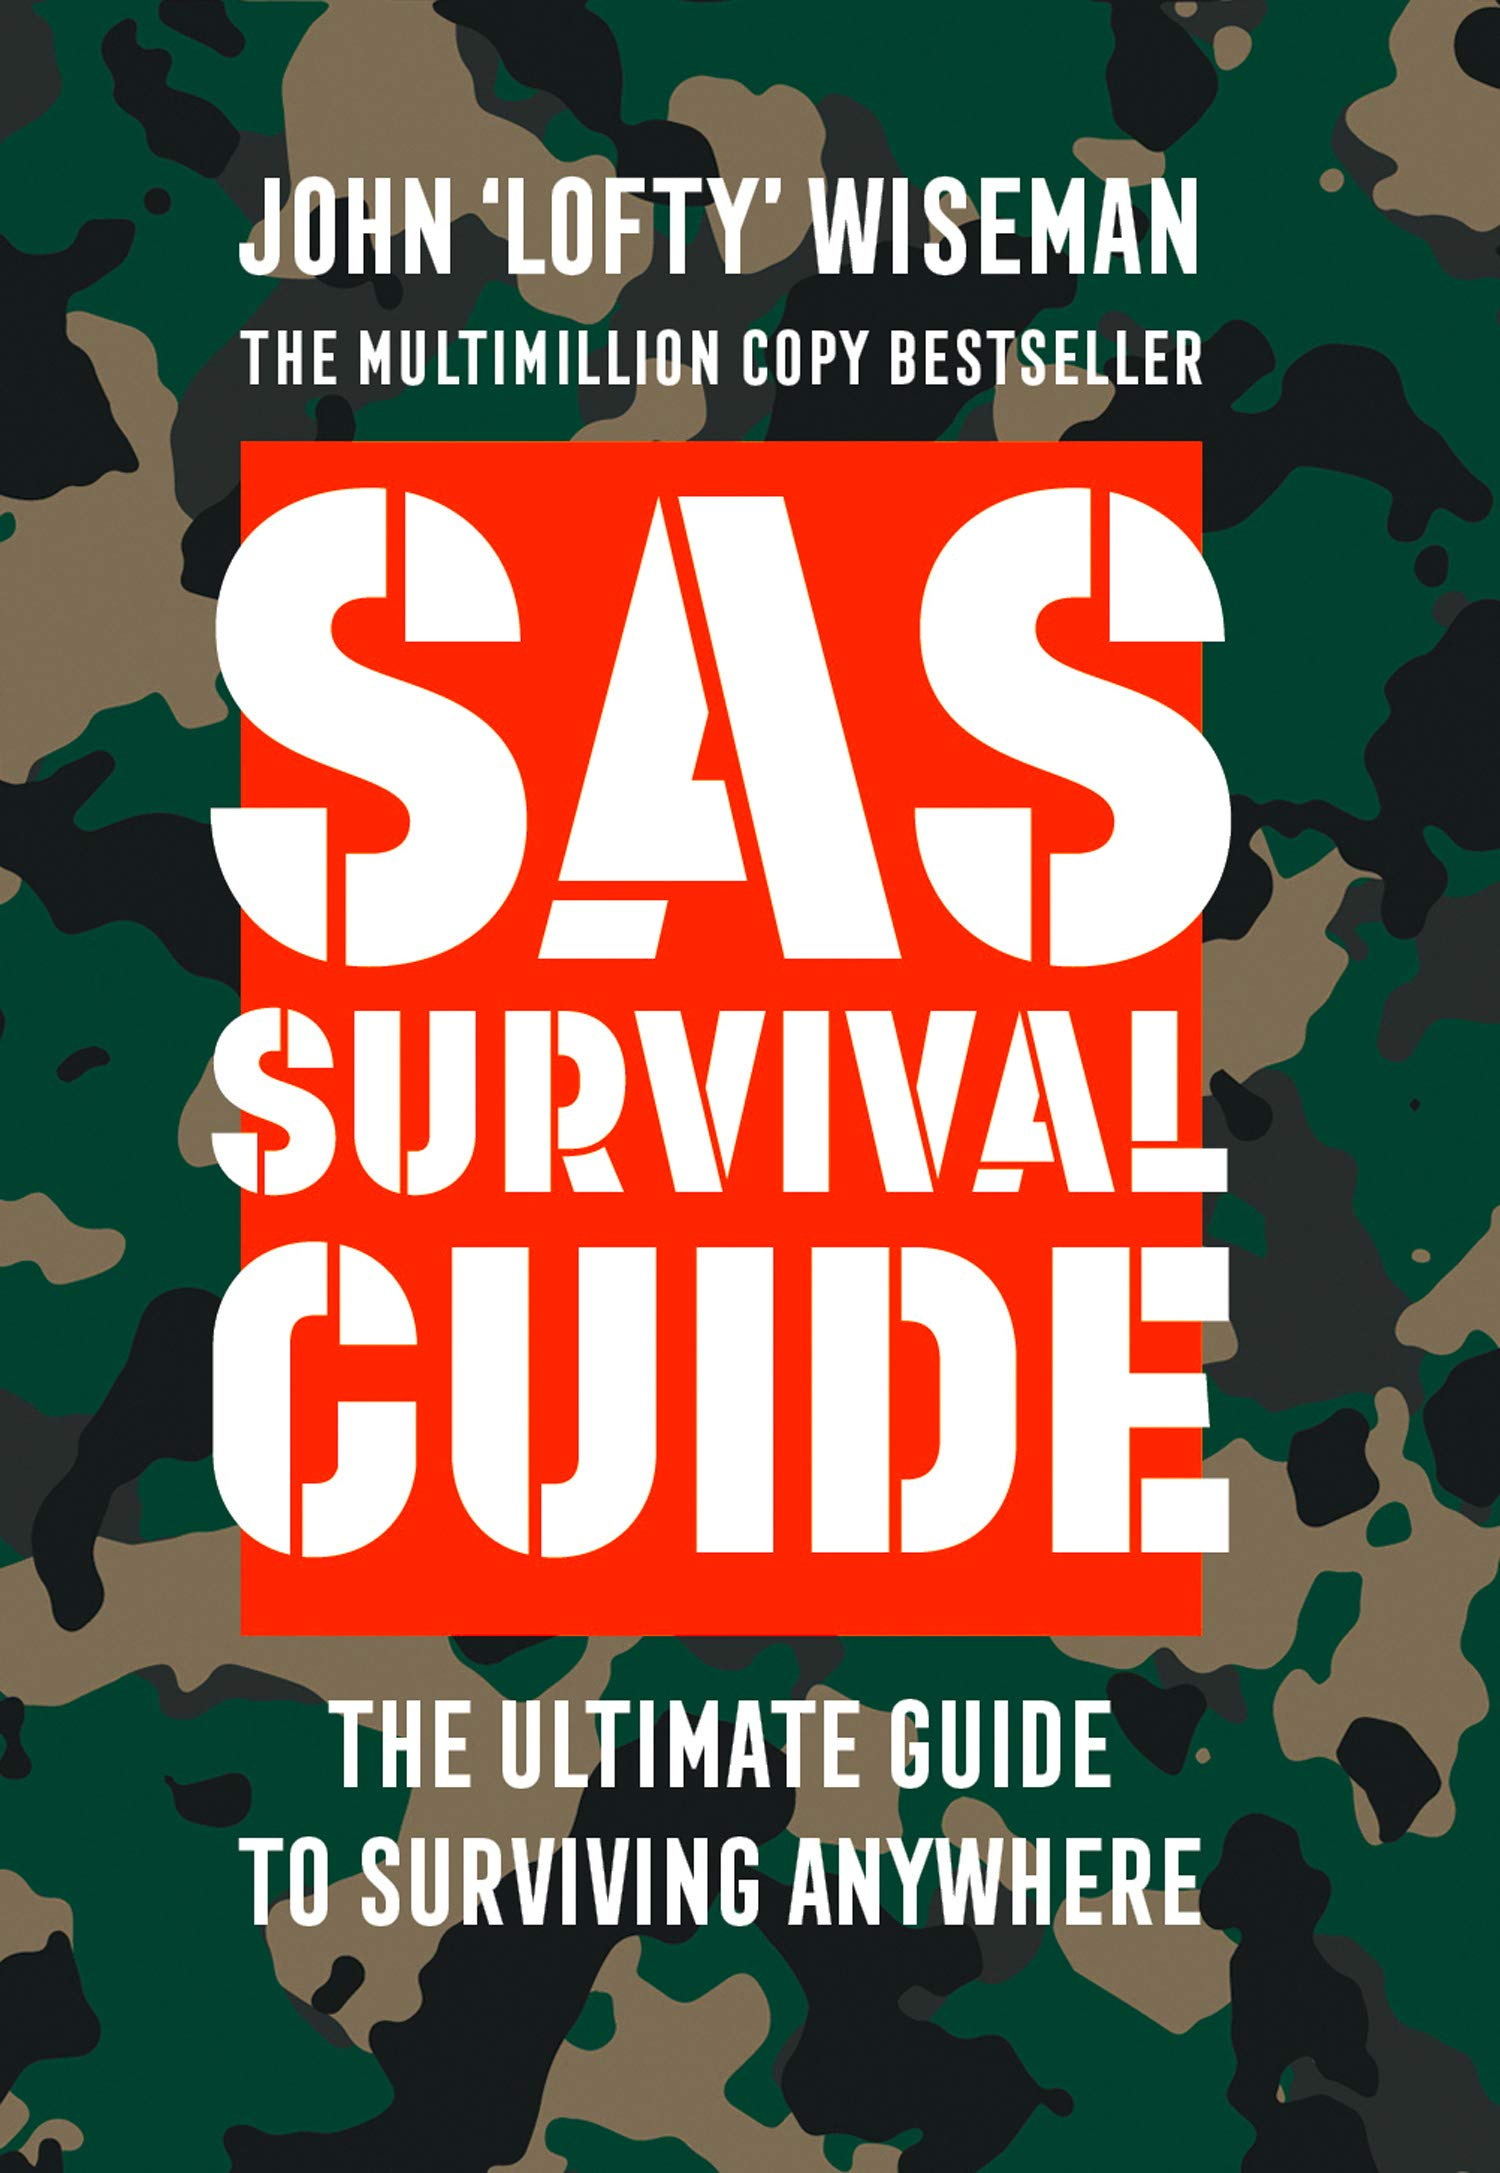 SAS Survival Guide: How to Survive in the Wild on Land or Sea (Collins Gem)